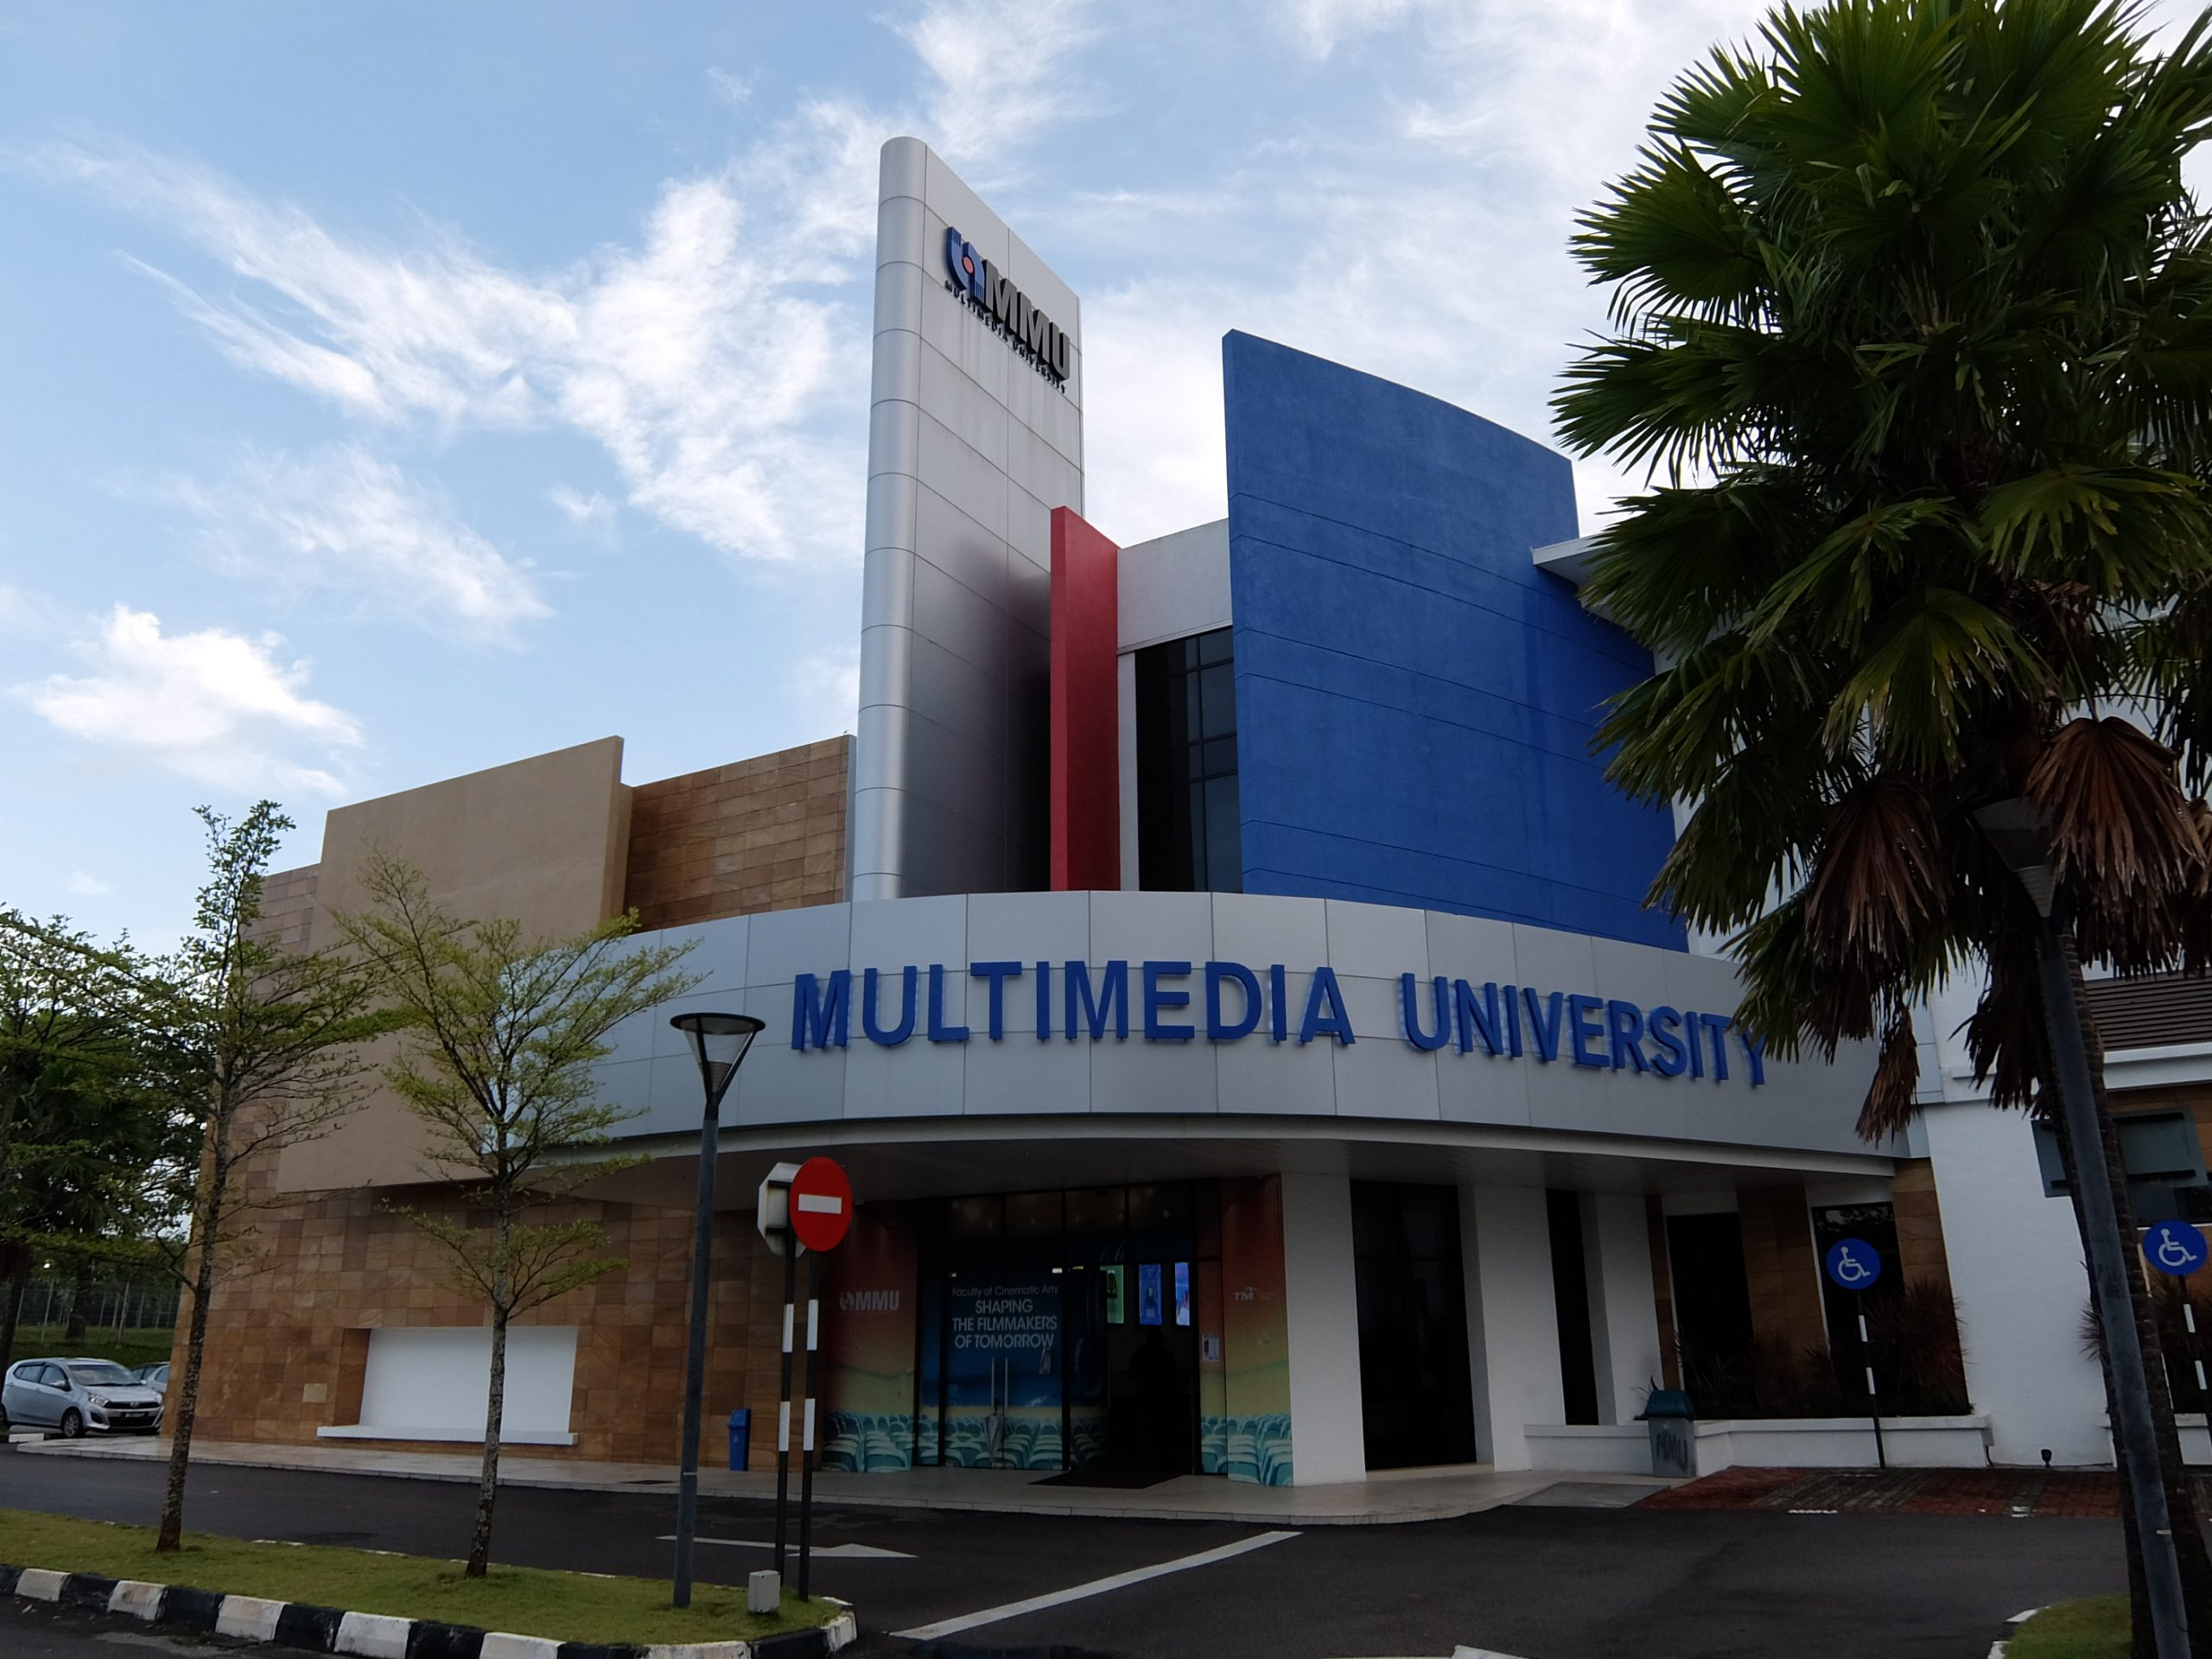 Multimedia University is among those Universities whose students have landed an opportunity to winKsh 5 million. www.businesstoday.co.ke